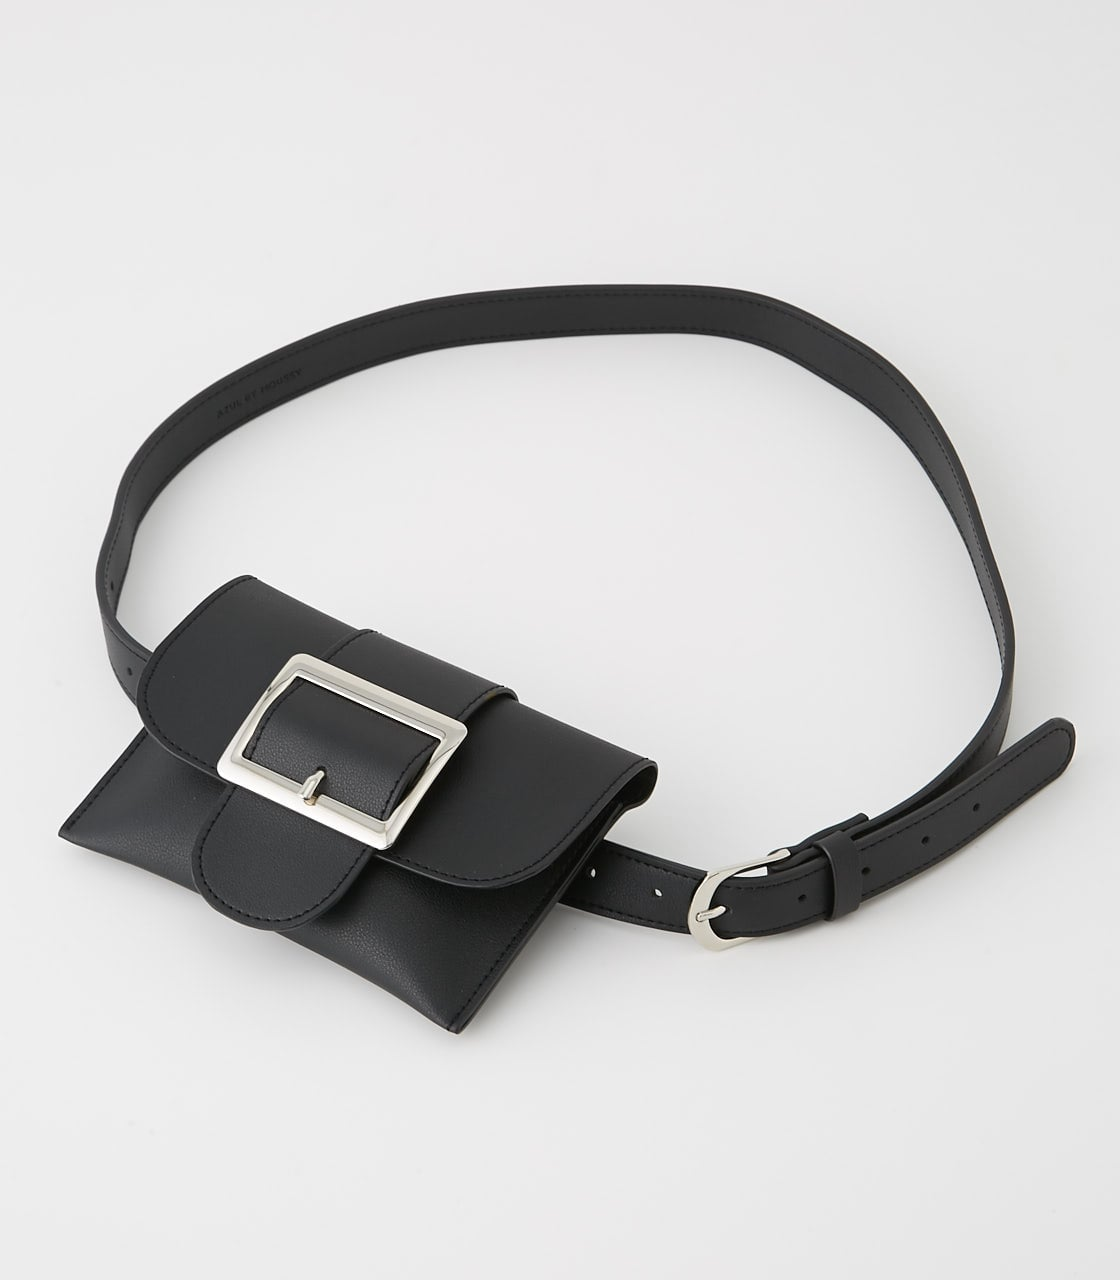 【AZUL BY MOUSSY】SQUARE BUCKLE PORCH SET BELT 詳細画像 BLK 1